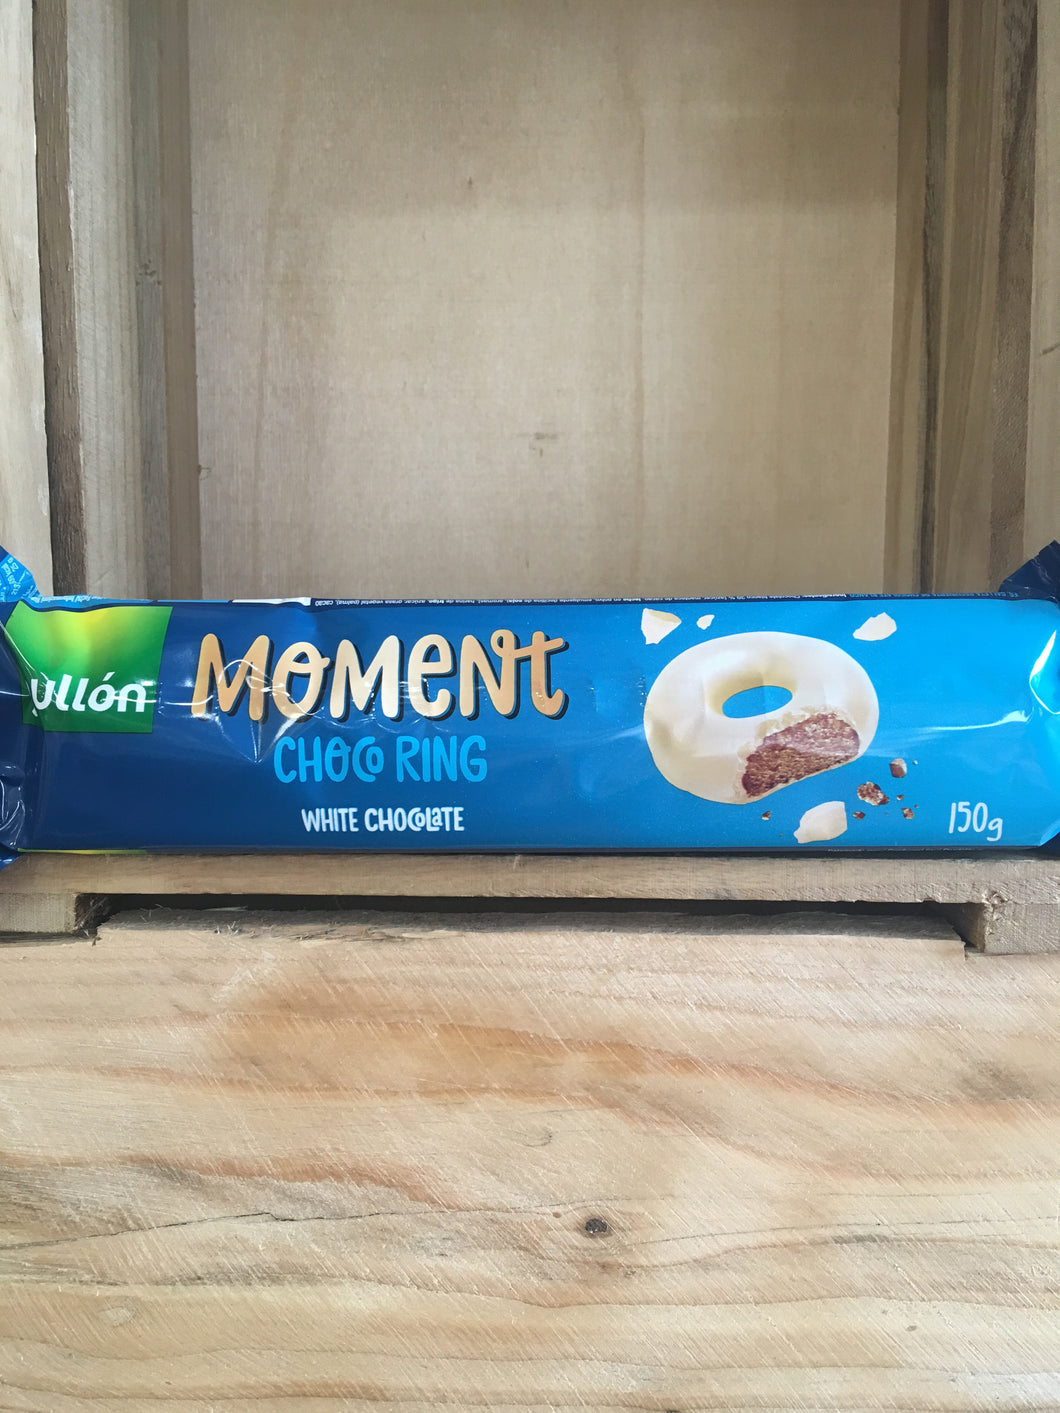 Gullon Moment Choco Ring White Chocolate Biscuits 150g